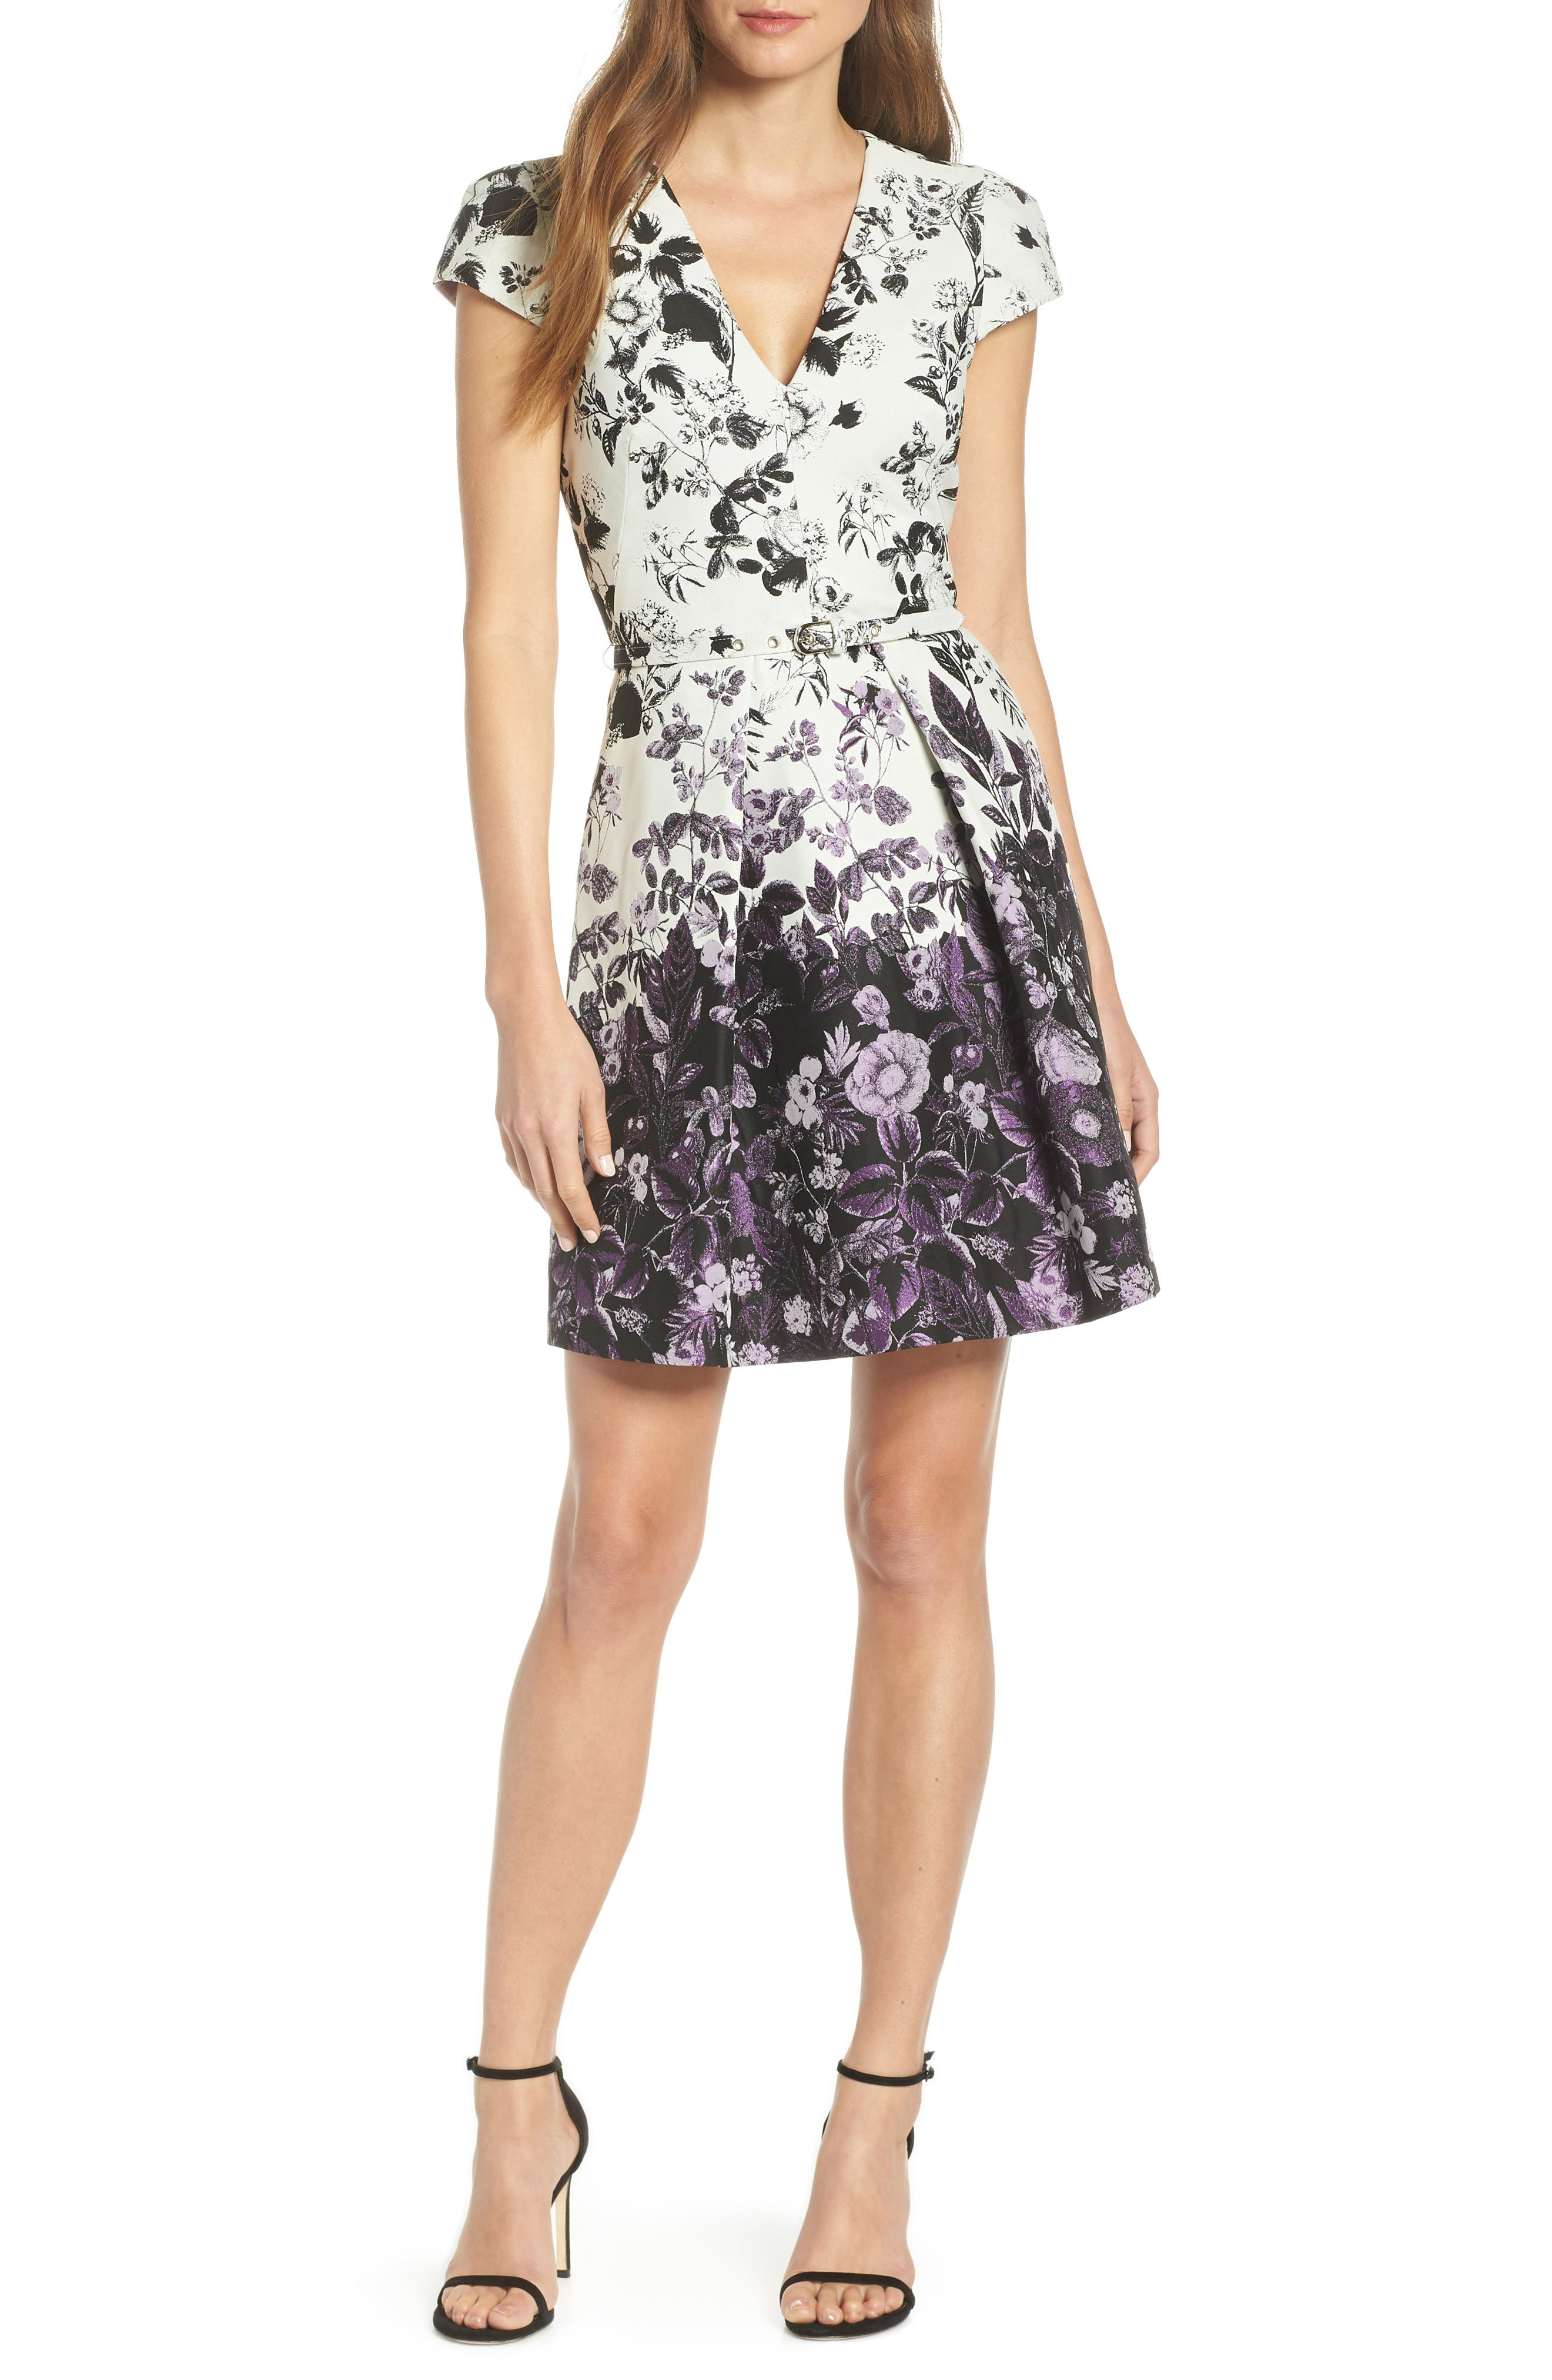 VINCE CAMUTO Floral Jacquard Fit and Flare Dress, Main, color, PURPLE MULTI